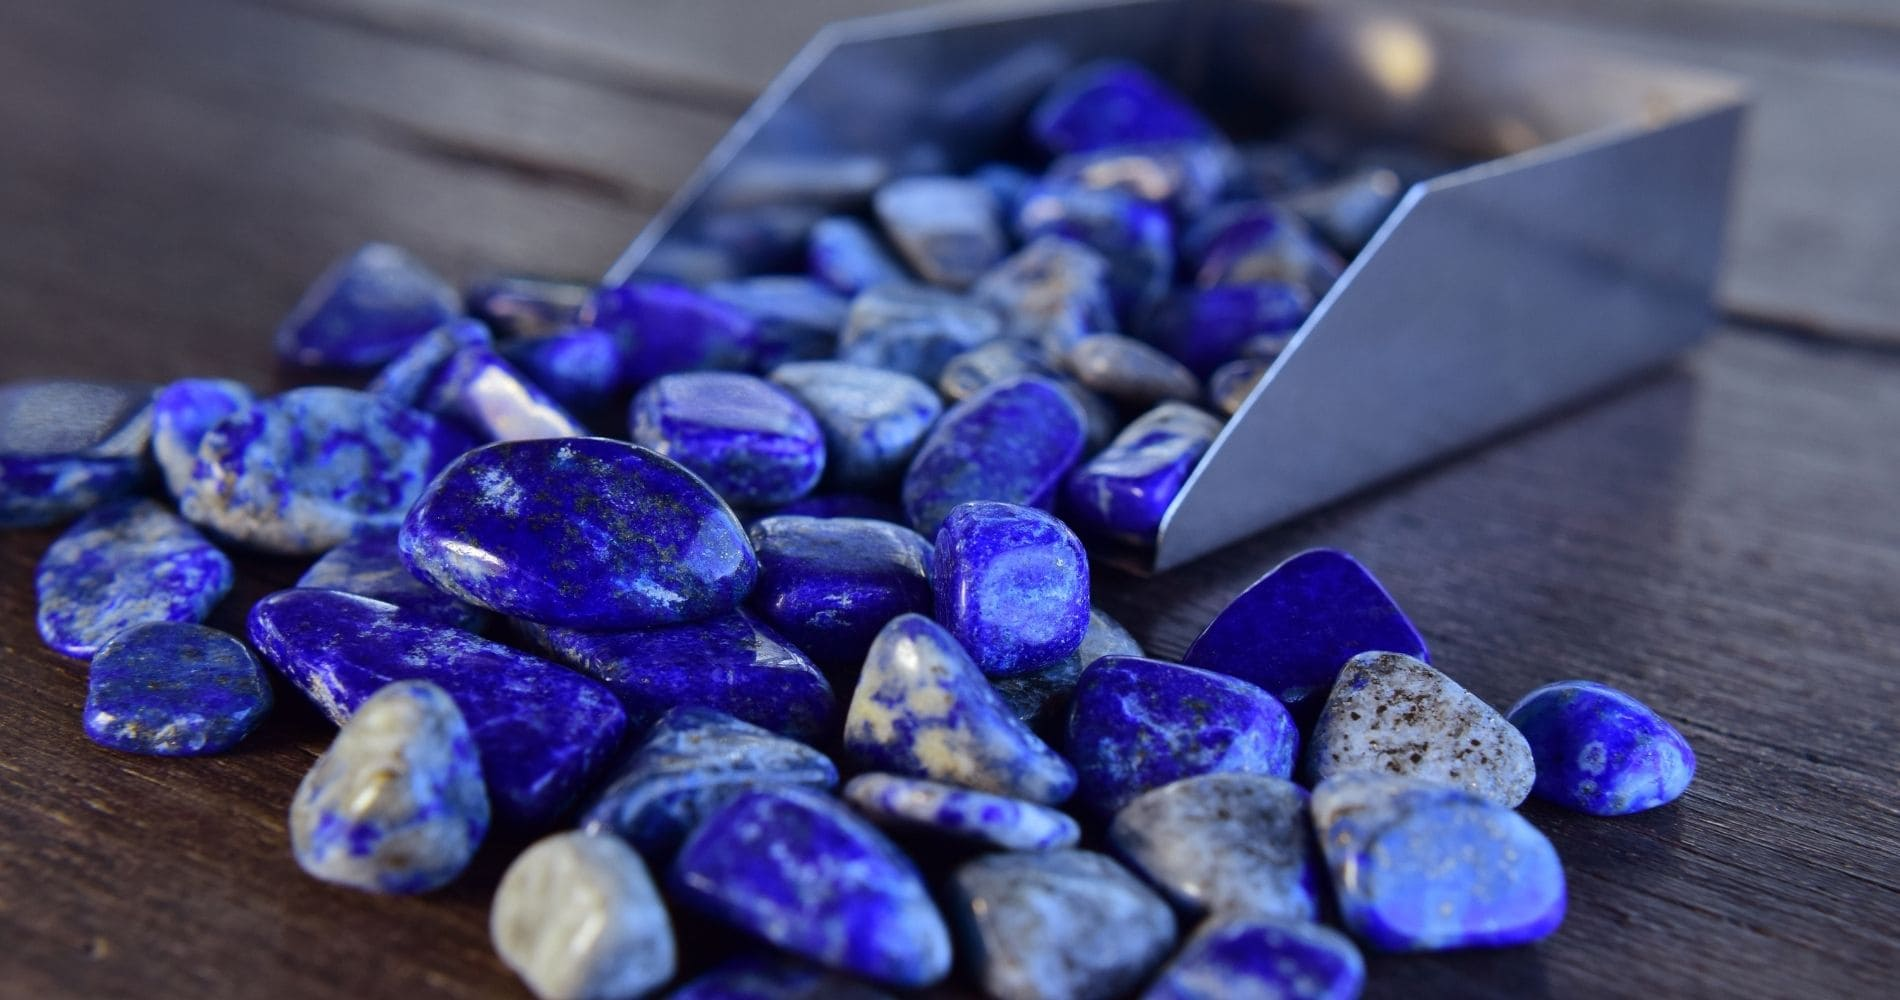 Lapis lazuli is a rock, which means it is a mineral aggregate